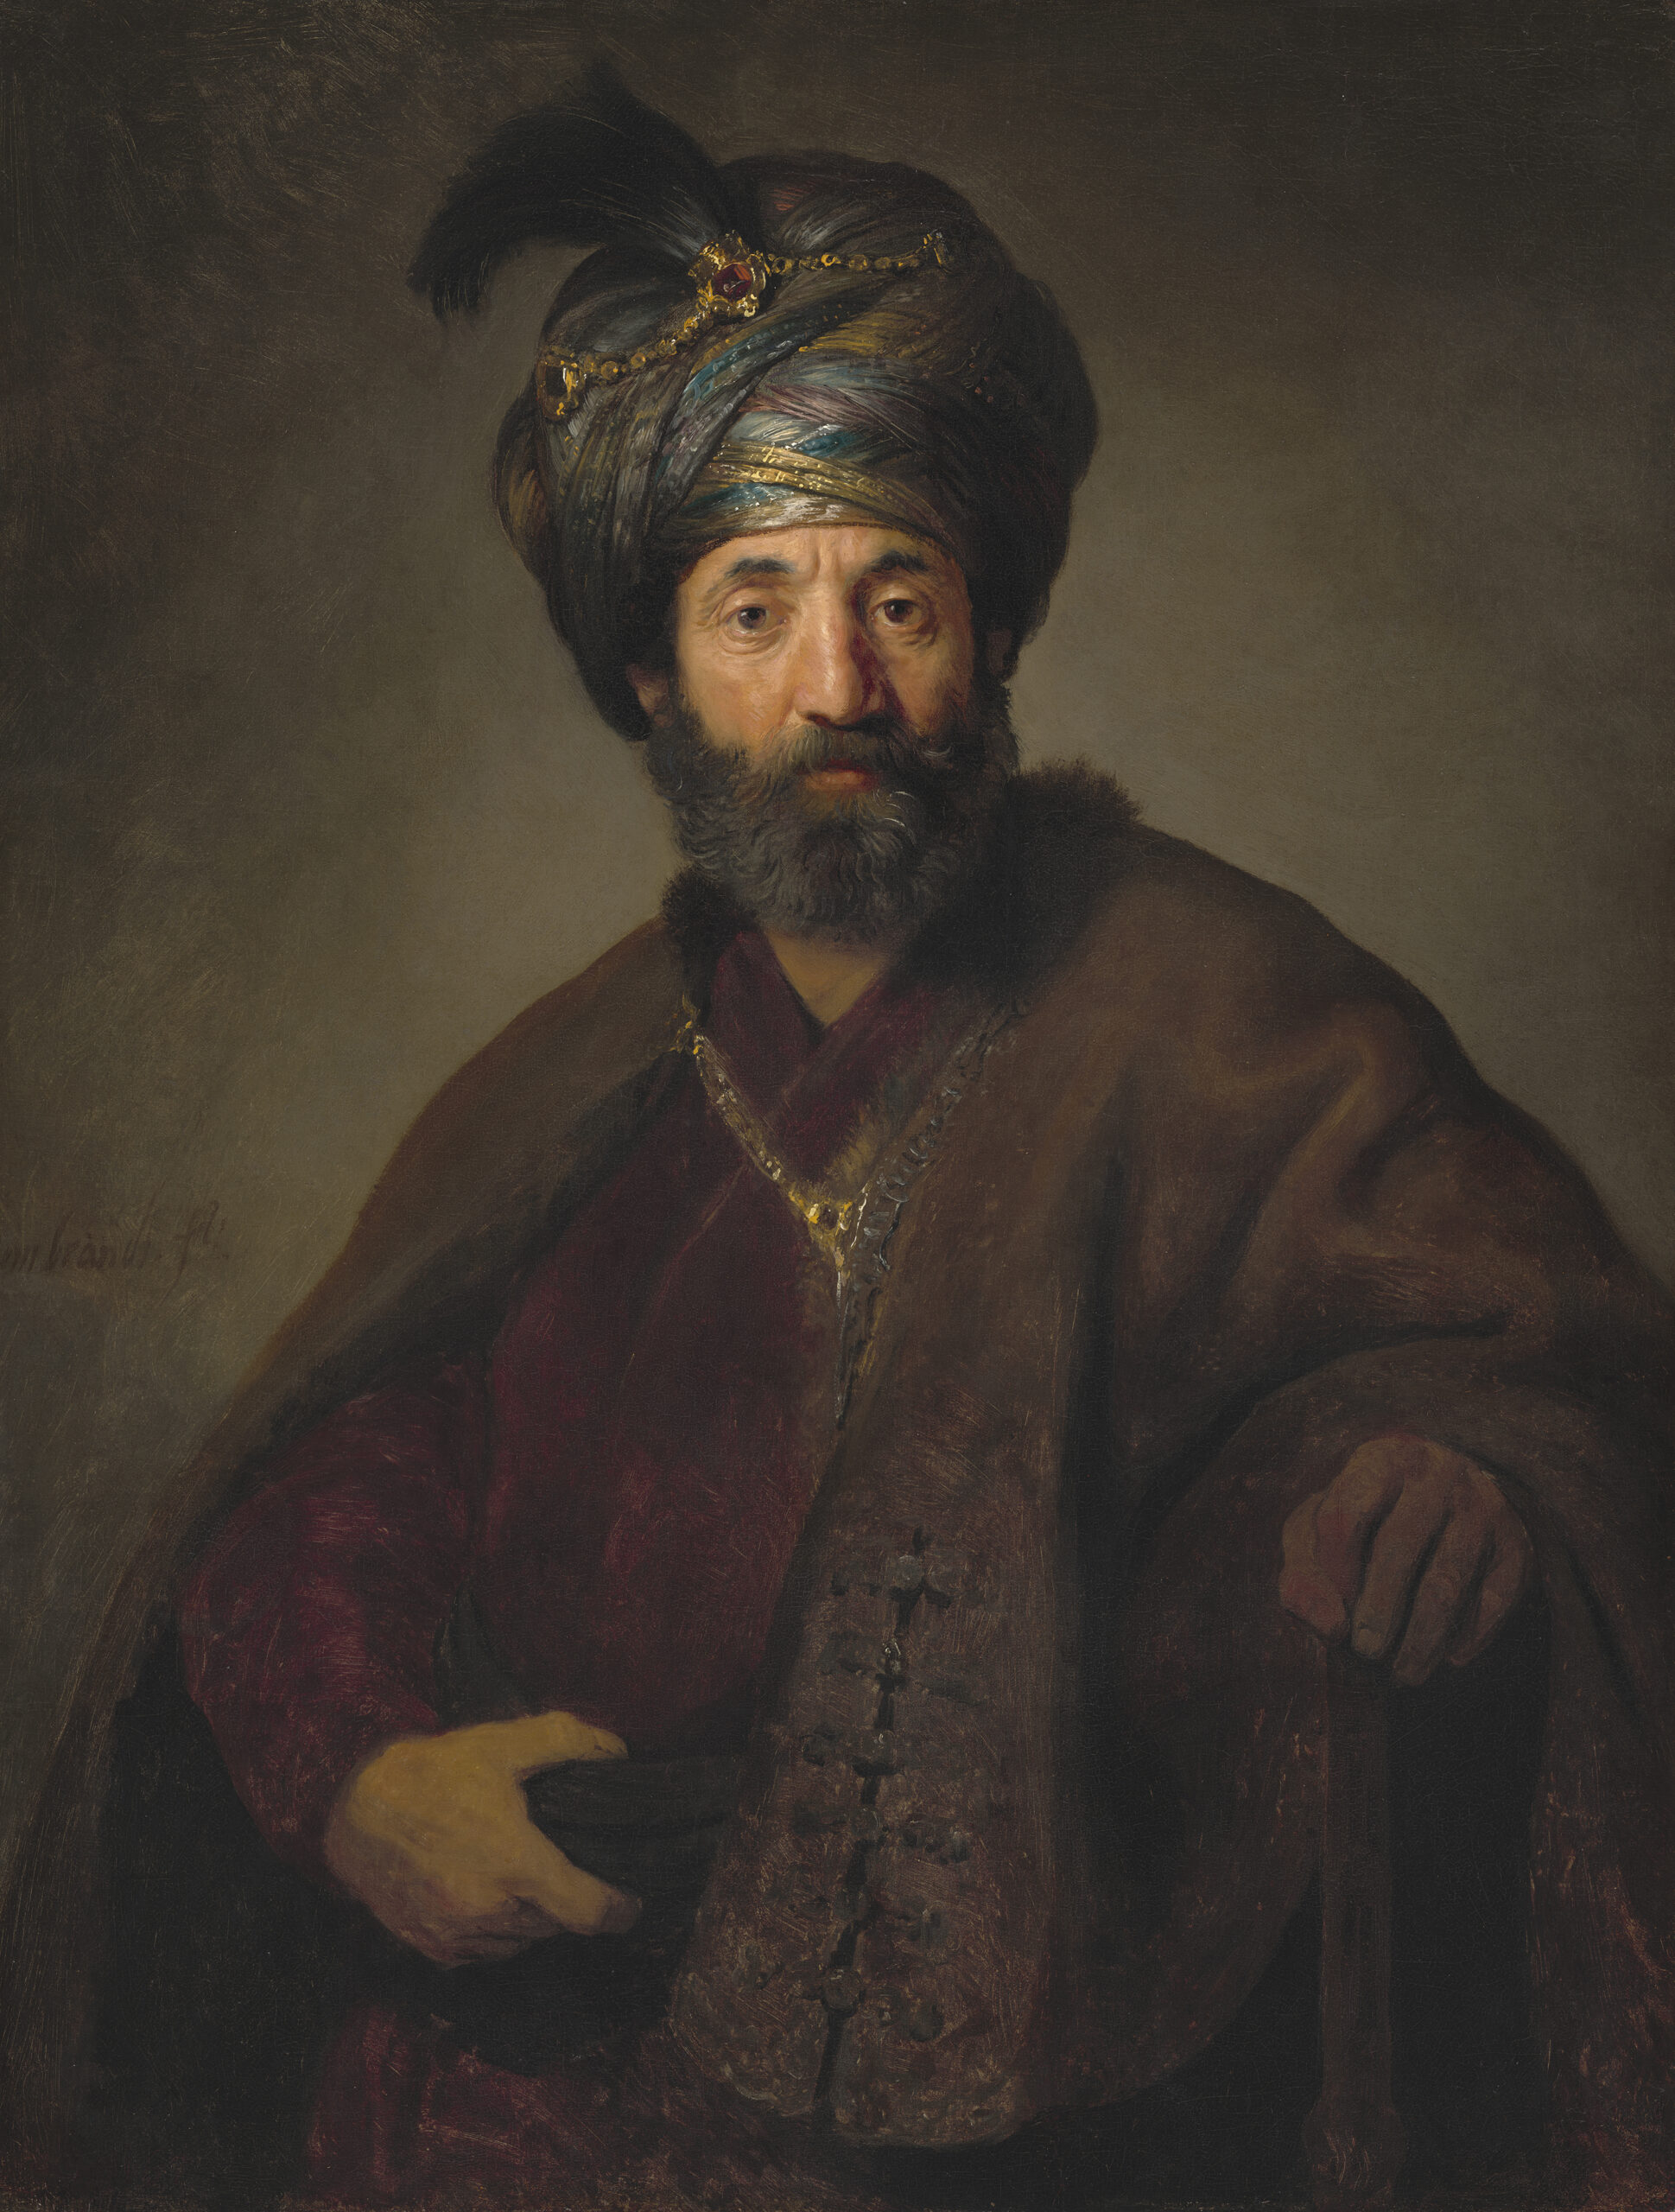 Rembrandt's Orient: An Exhibition in Basel and Potsdam - CODART